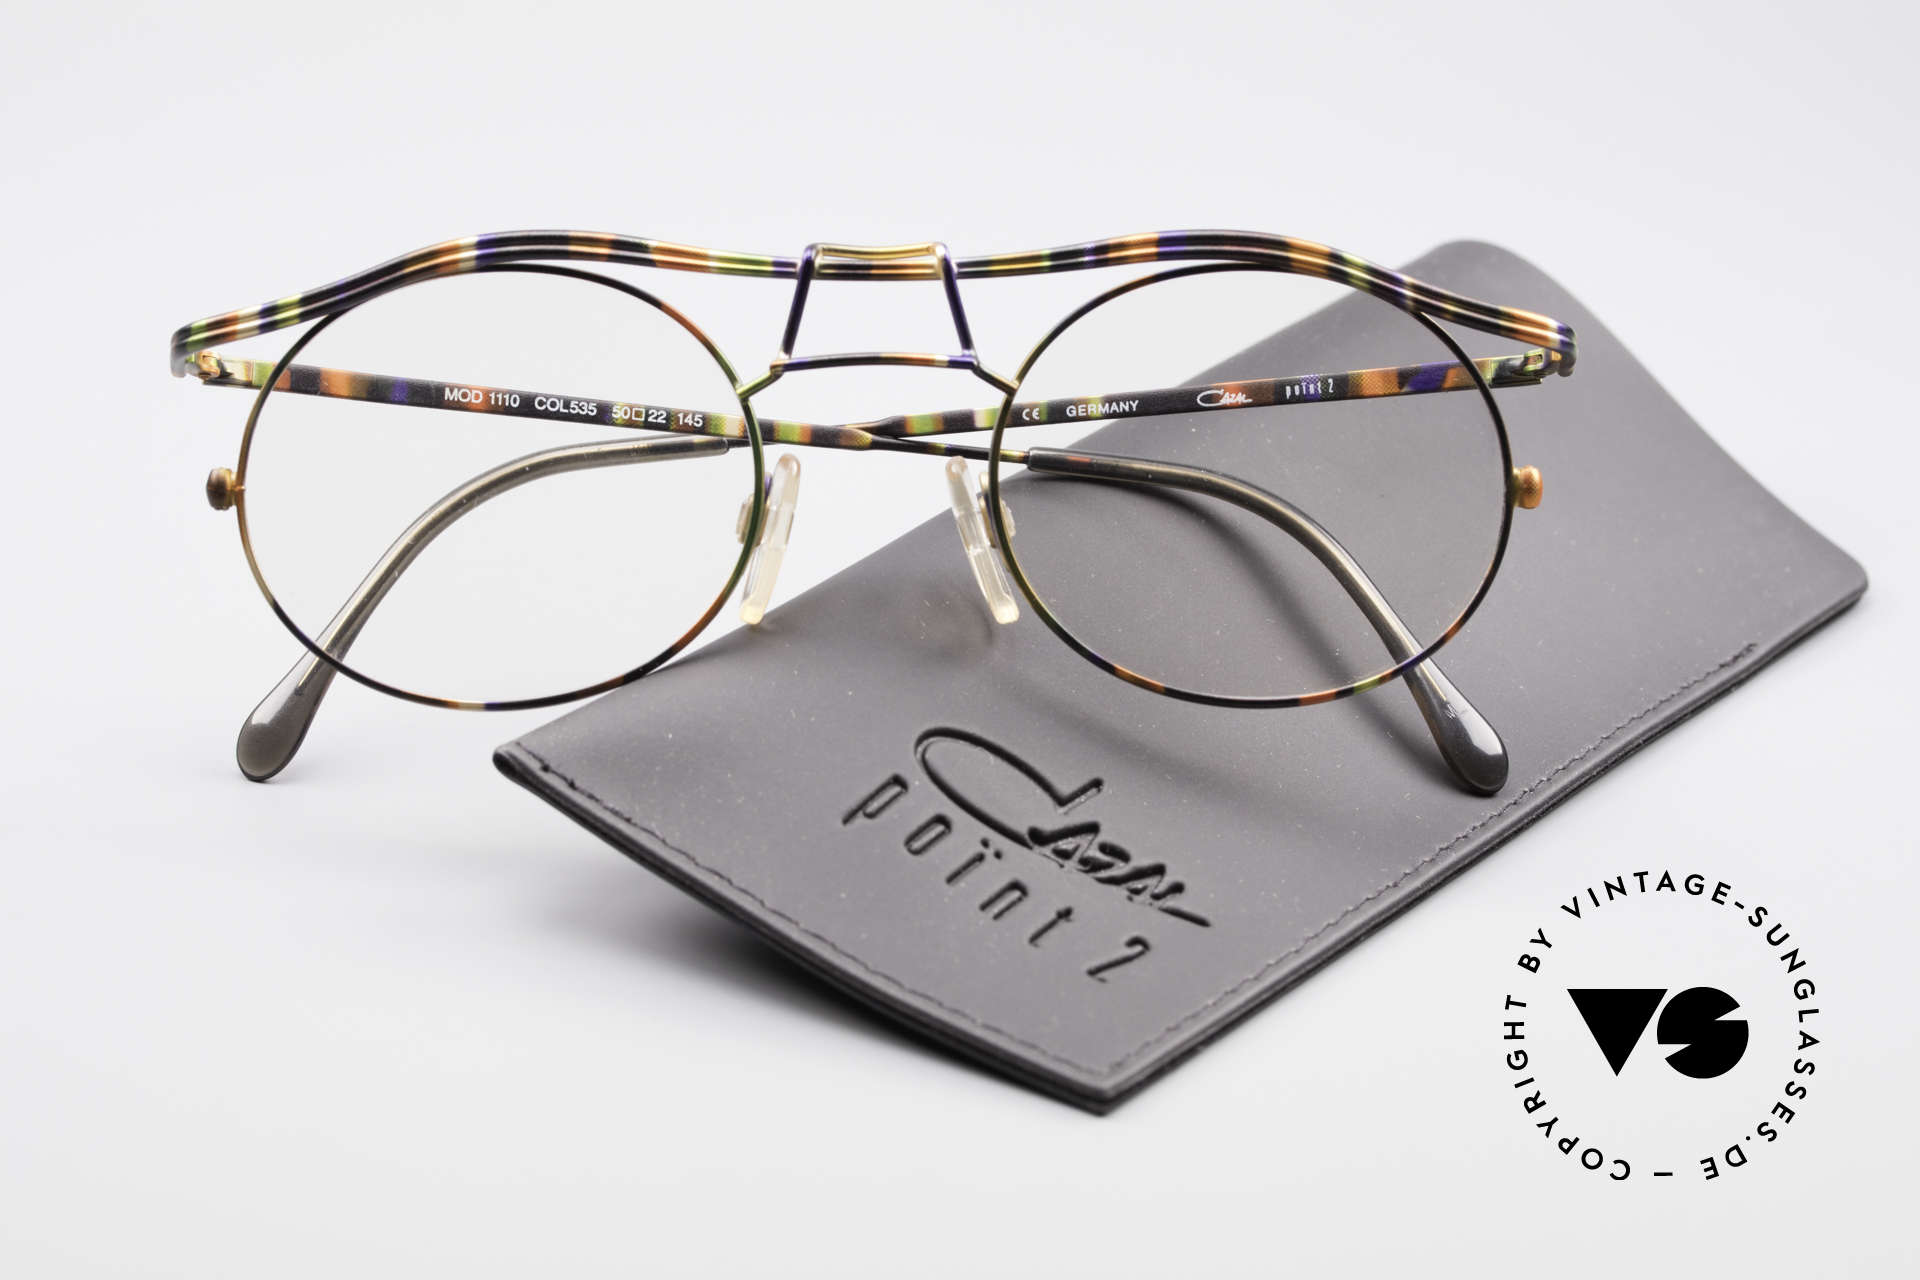 Cazal 1110 - Point 2 90's Industrial Eyeglass-Frame, the frame is made for lenses of any kind (optical / sun), Made for Men